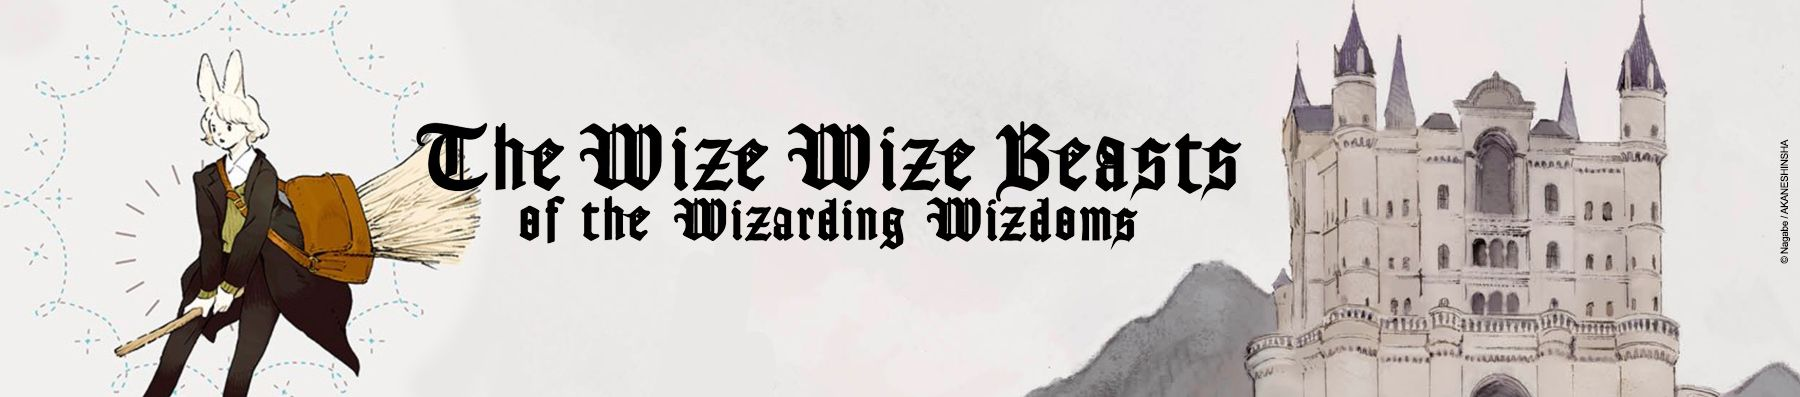 Dossier - The Wize Wize Beasts of The Wizarding Wizdoms